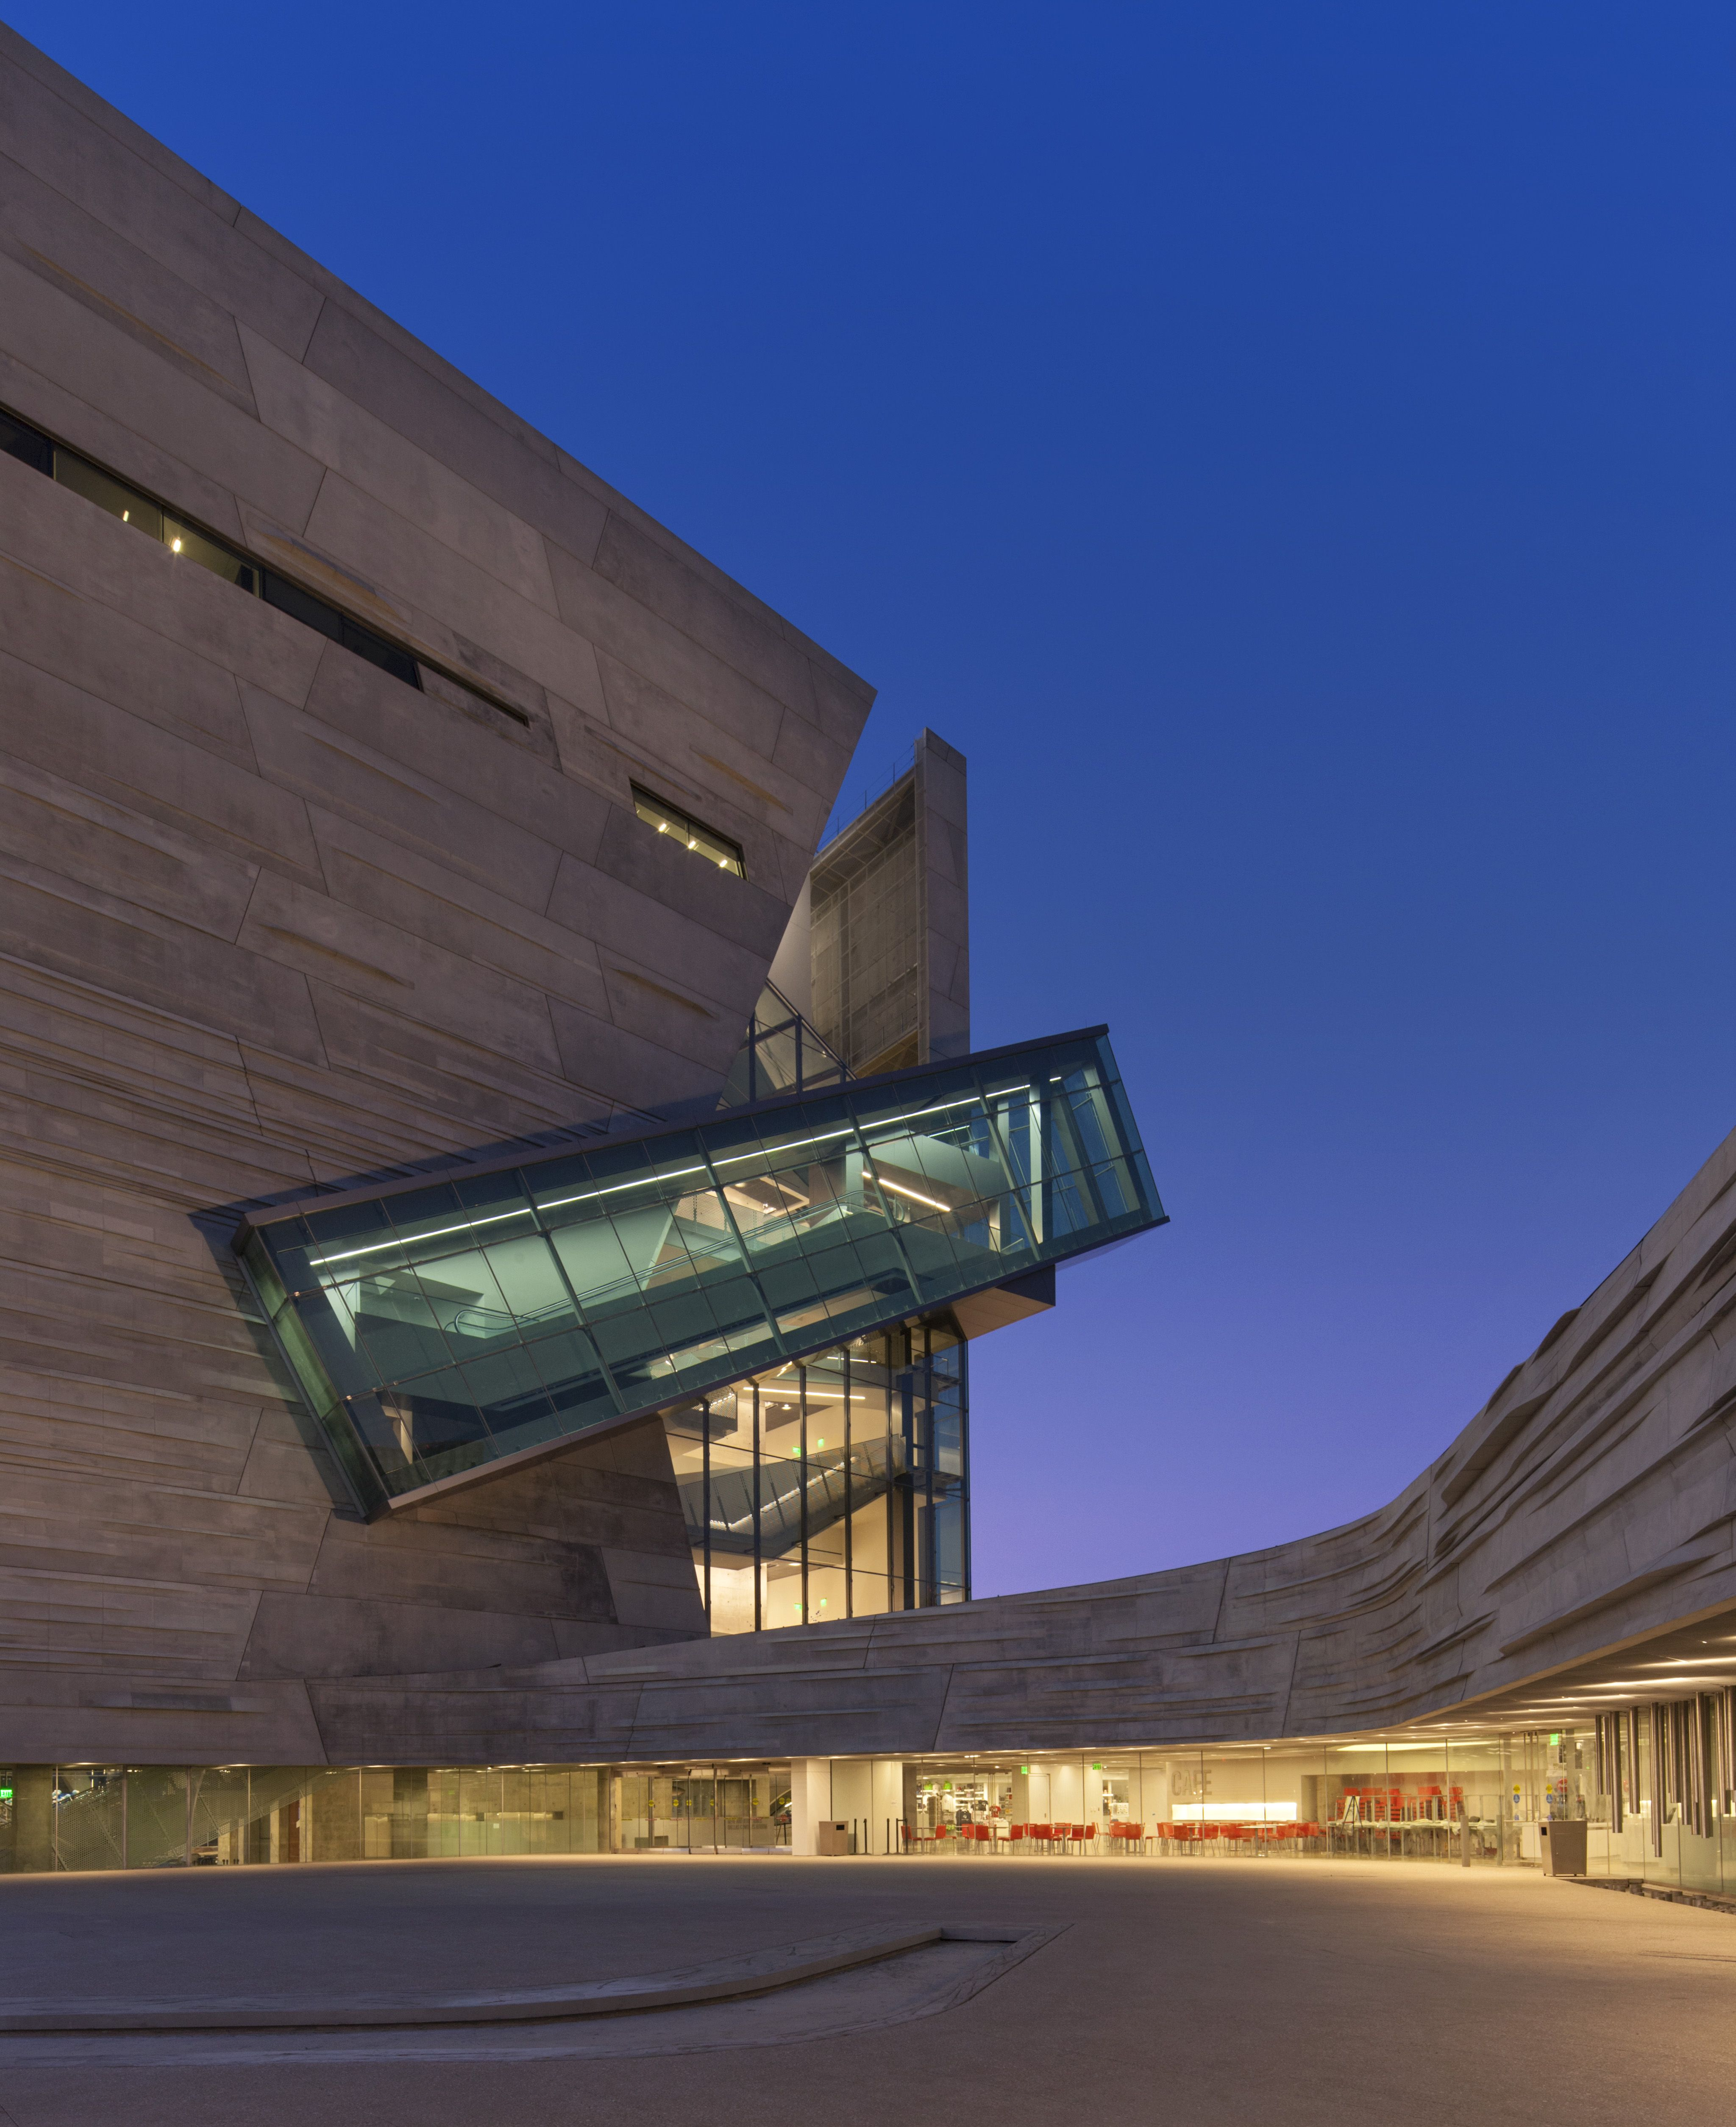 The Dallas Perot Museum of Science and Nature | Architektur, Parasit ...